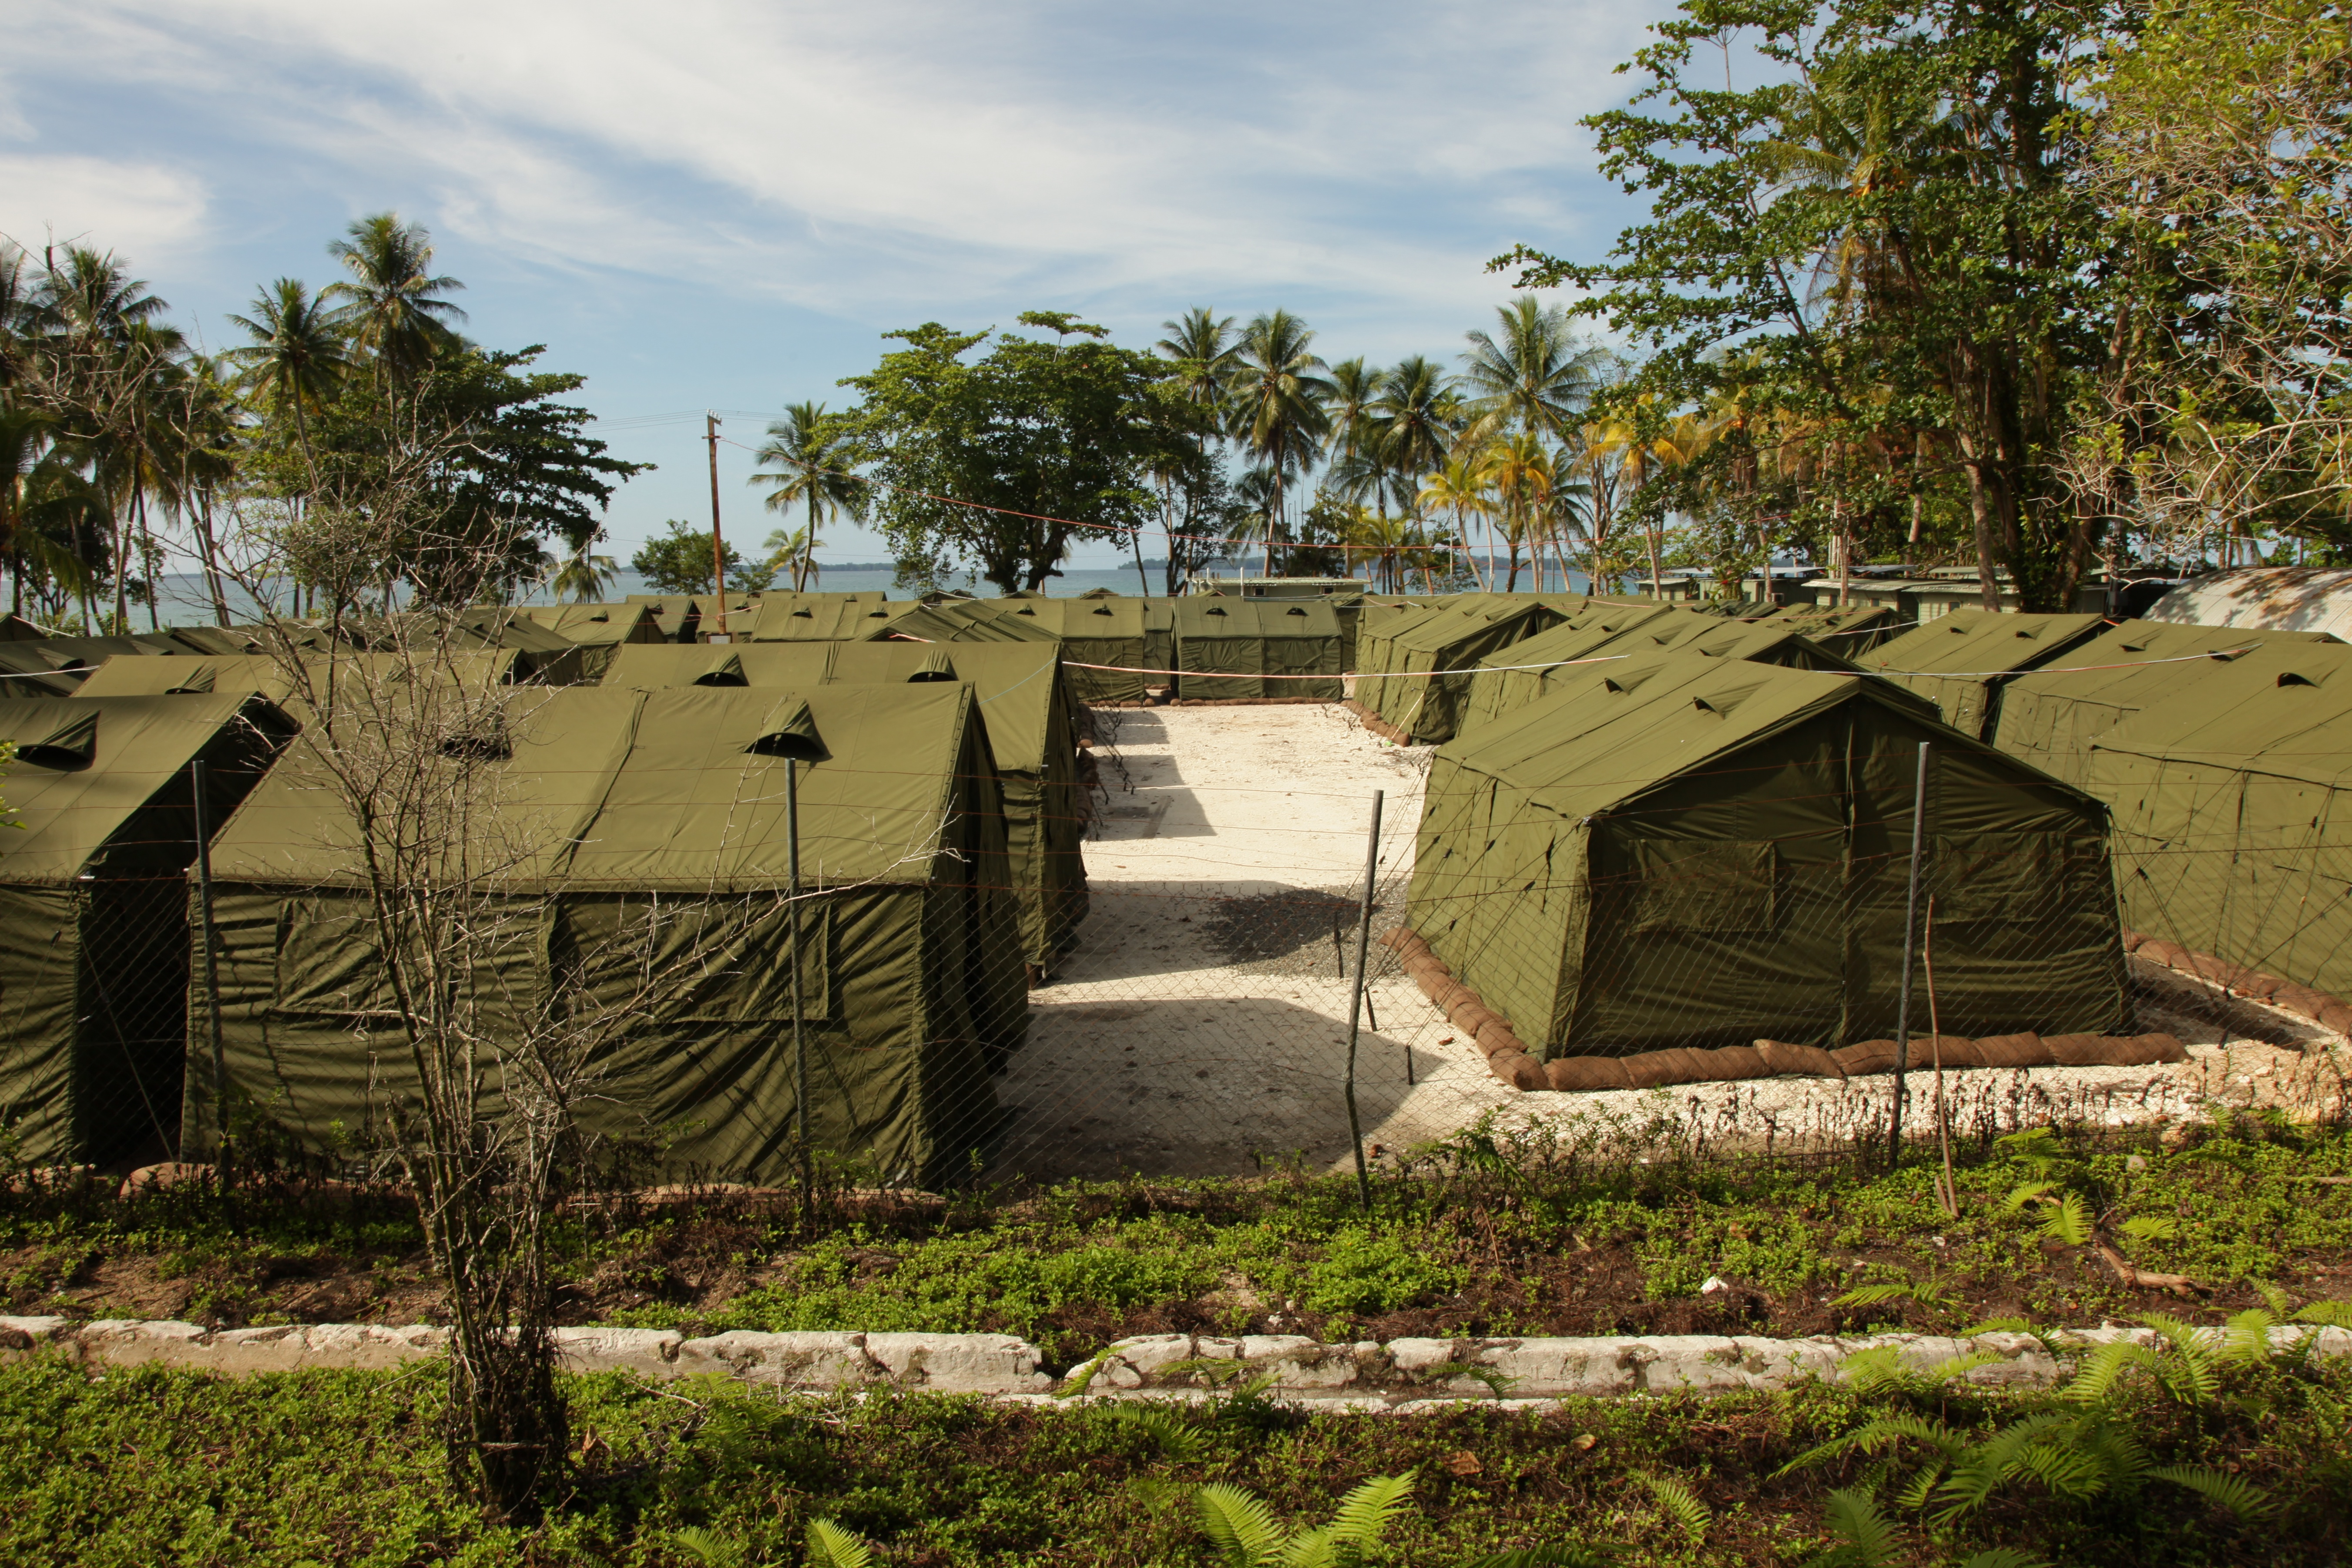 This handout photo provided by the Australian Department of Immigration and Citizenship, shows facilities at the Manus Island Regional Processing Facility, used for the detention of asylum seekers that arrive by boat, primarily to Christmas Island off the Australian mainland, on October 16, 2012, in Papua New Guinea.